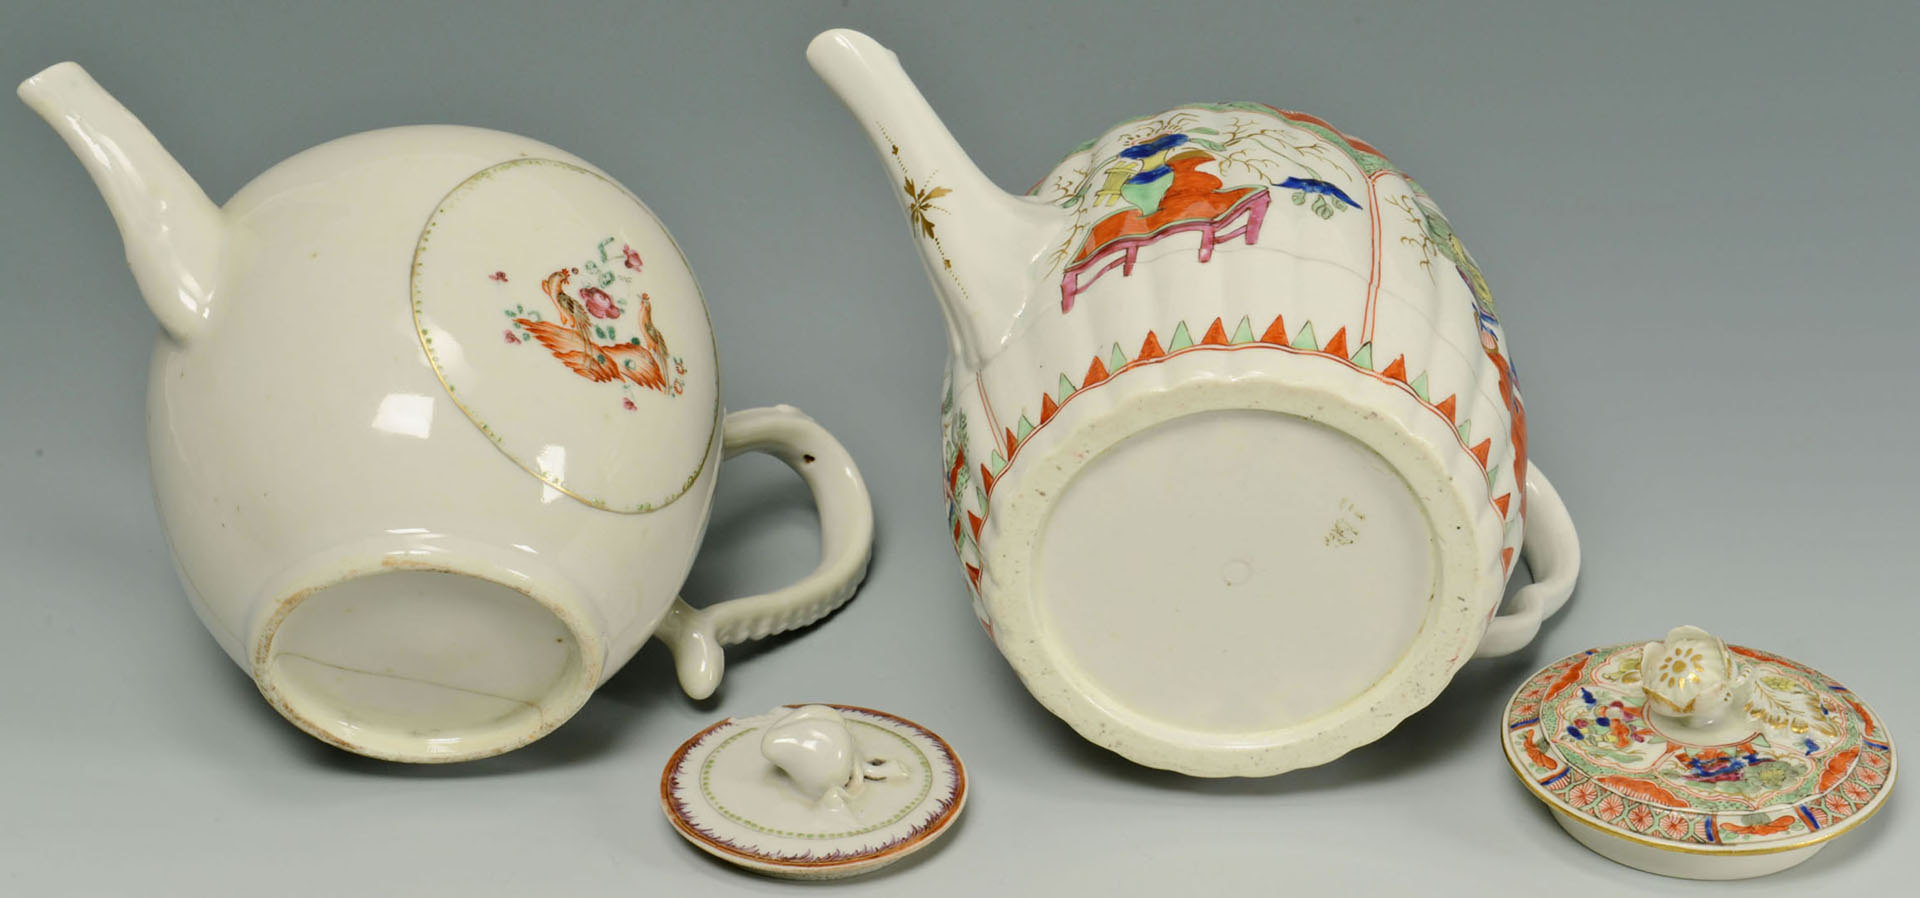 Lot 456: 11 Assorted Pieces of Chinese Porcelain